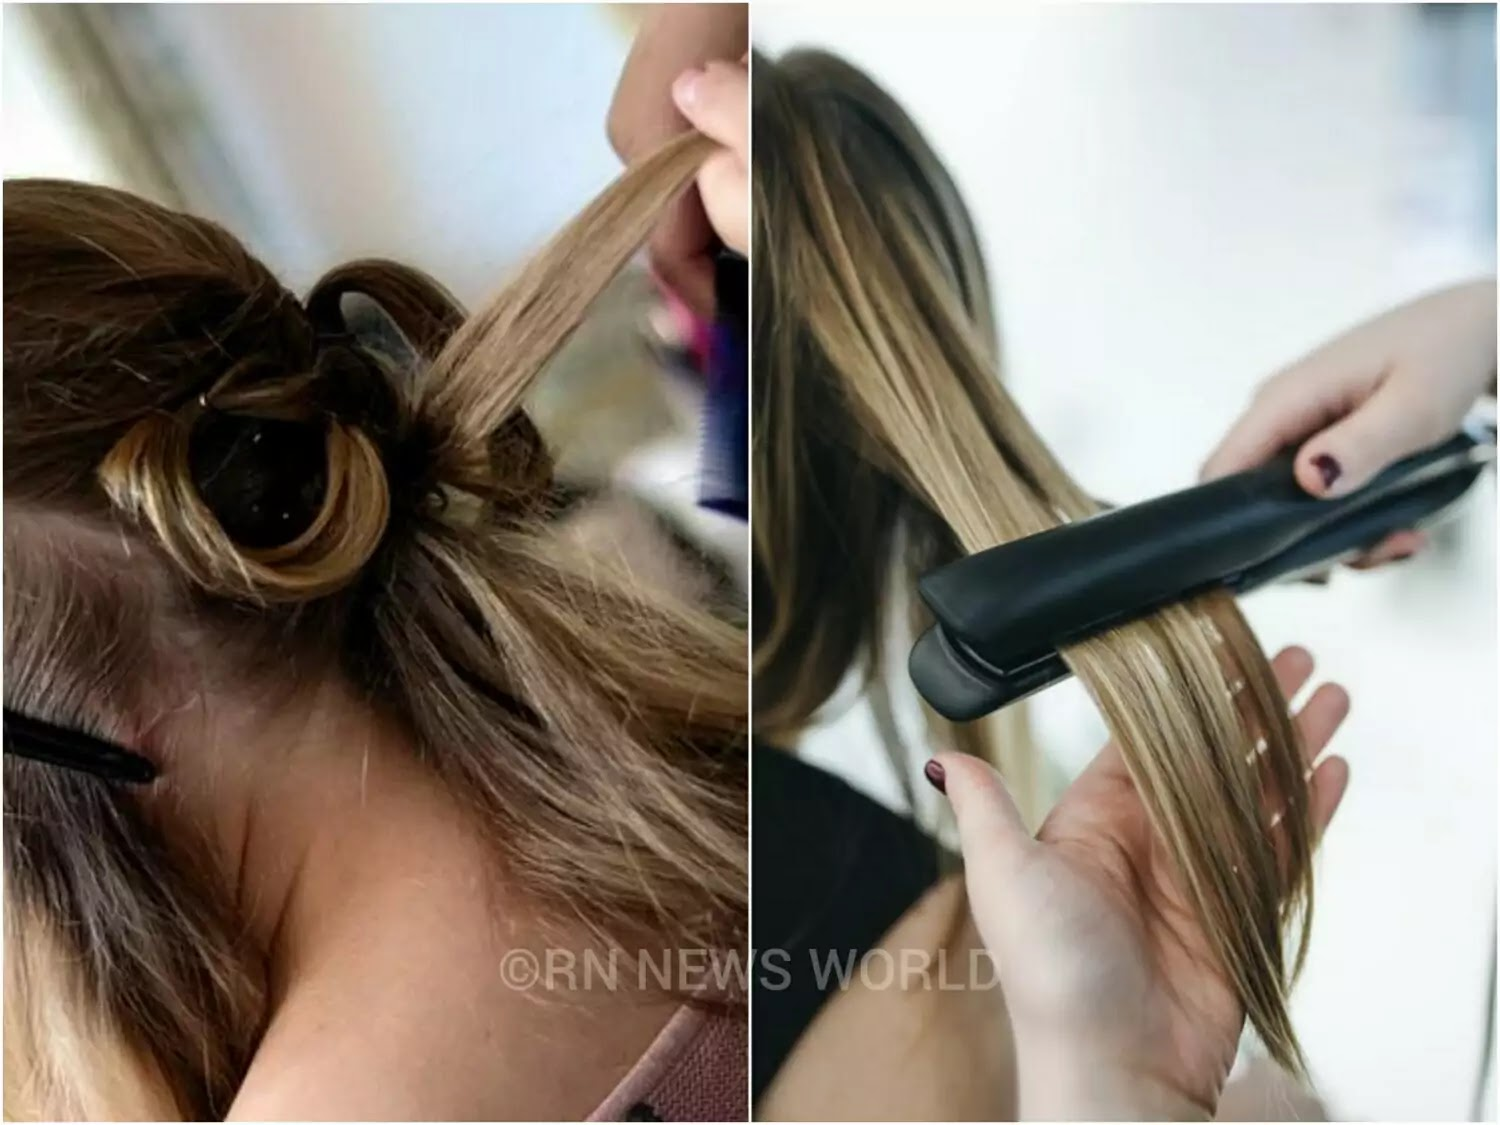 How To Take Care Of Hair Daily At Home